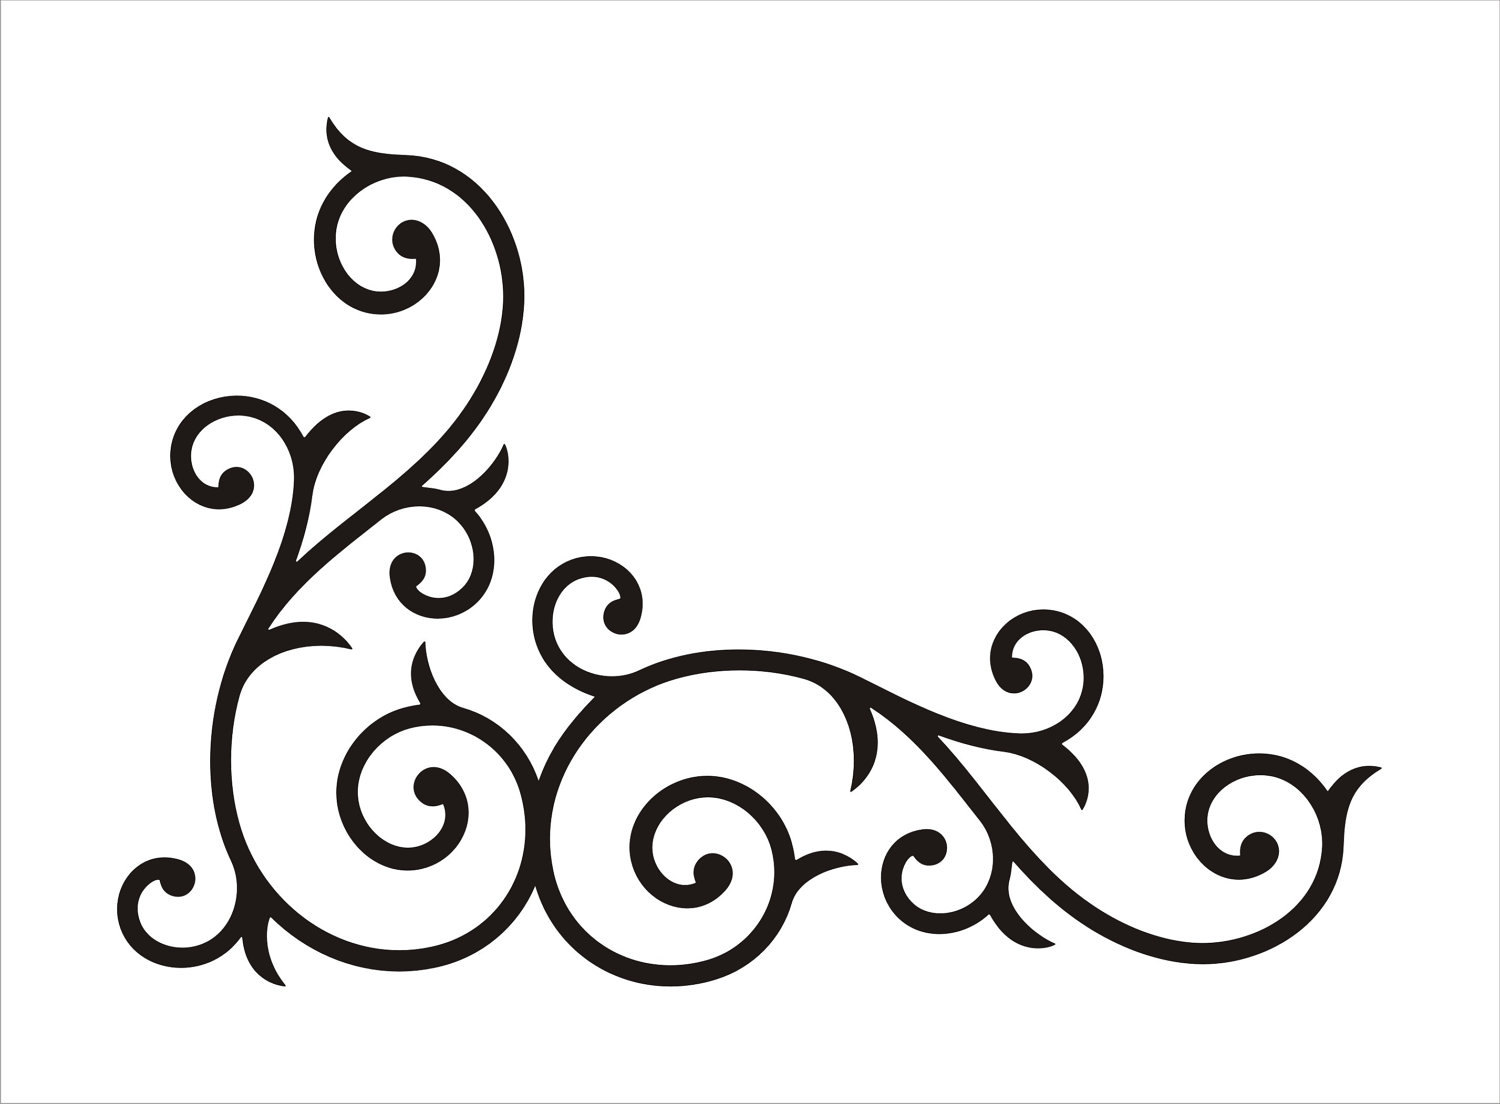 Fancy clipart borders graphic free download Fancy Border Clip Art Swirl | Clipart Panda - Free Clipart Images graphic free download